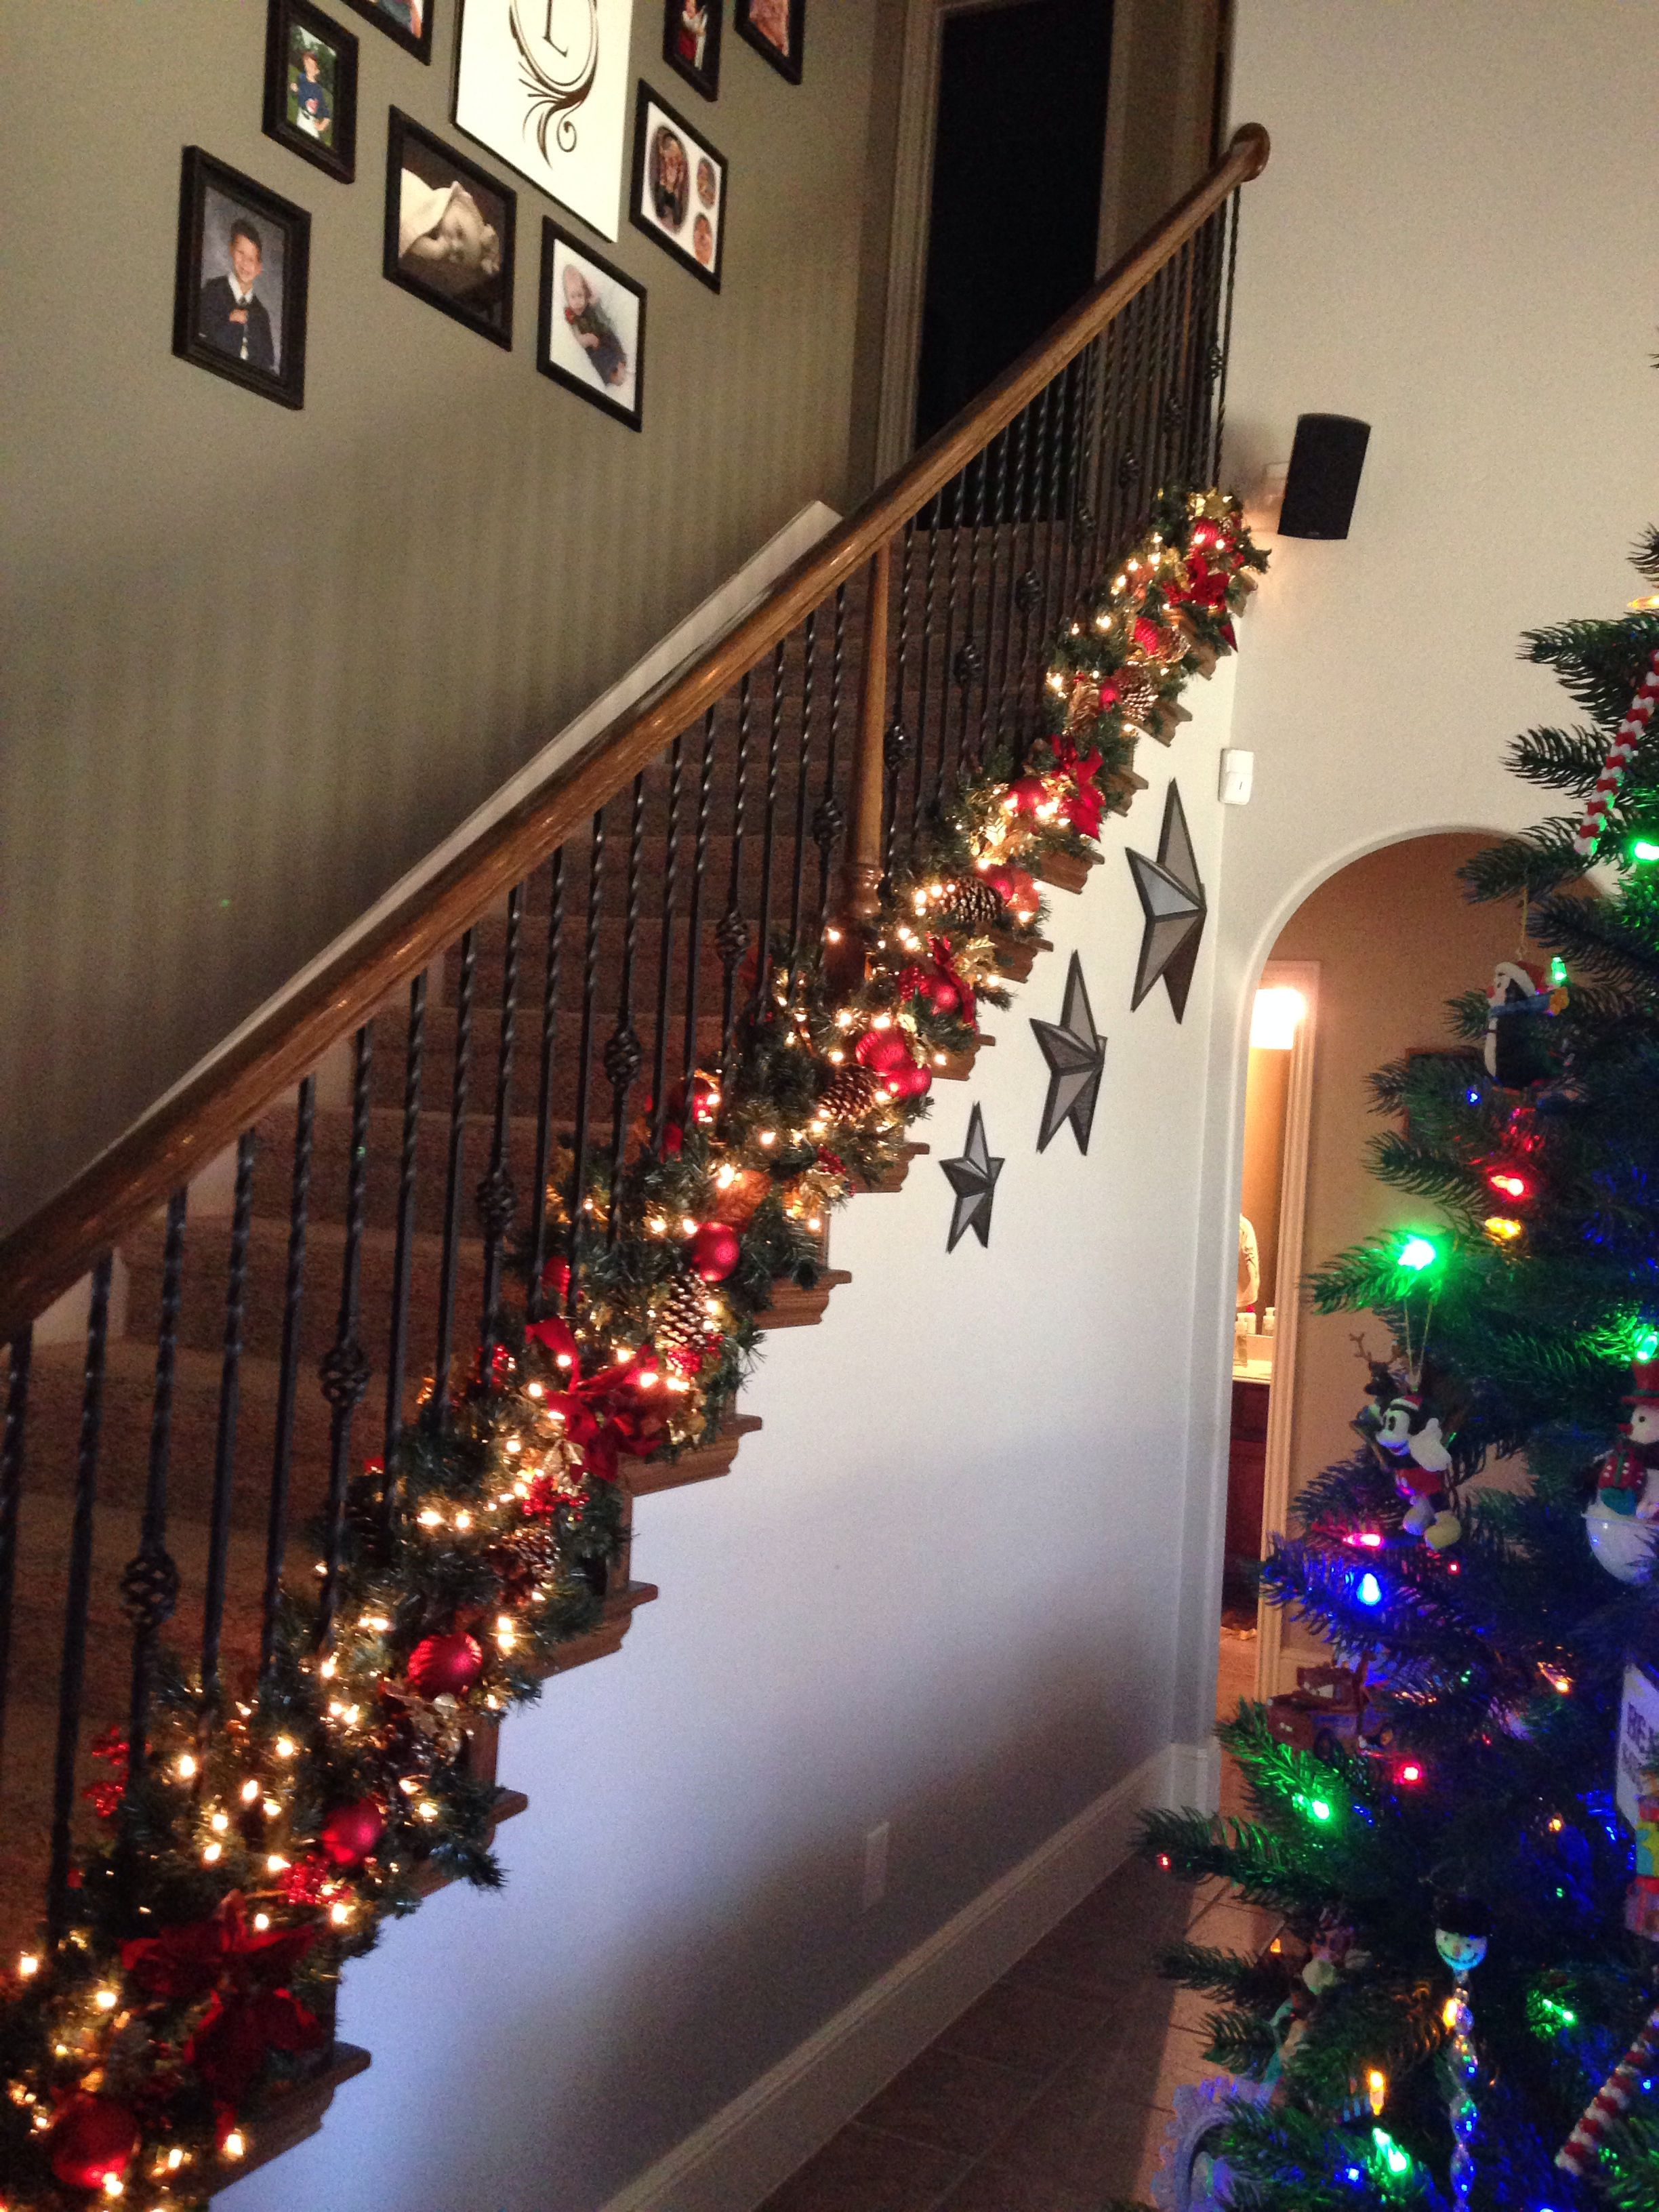 love the garland at bottom of banister to keep hand rail free for kids and guest - Christmas Decorations Staircase Hand Railing